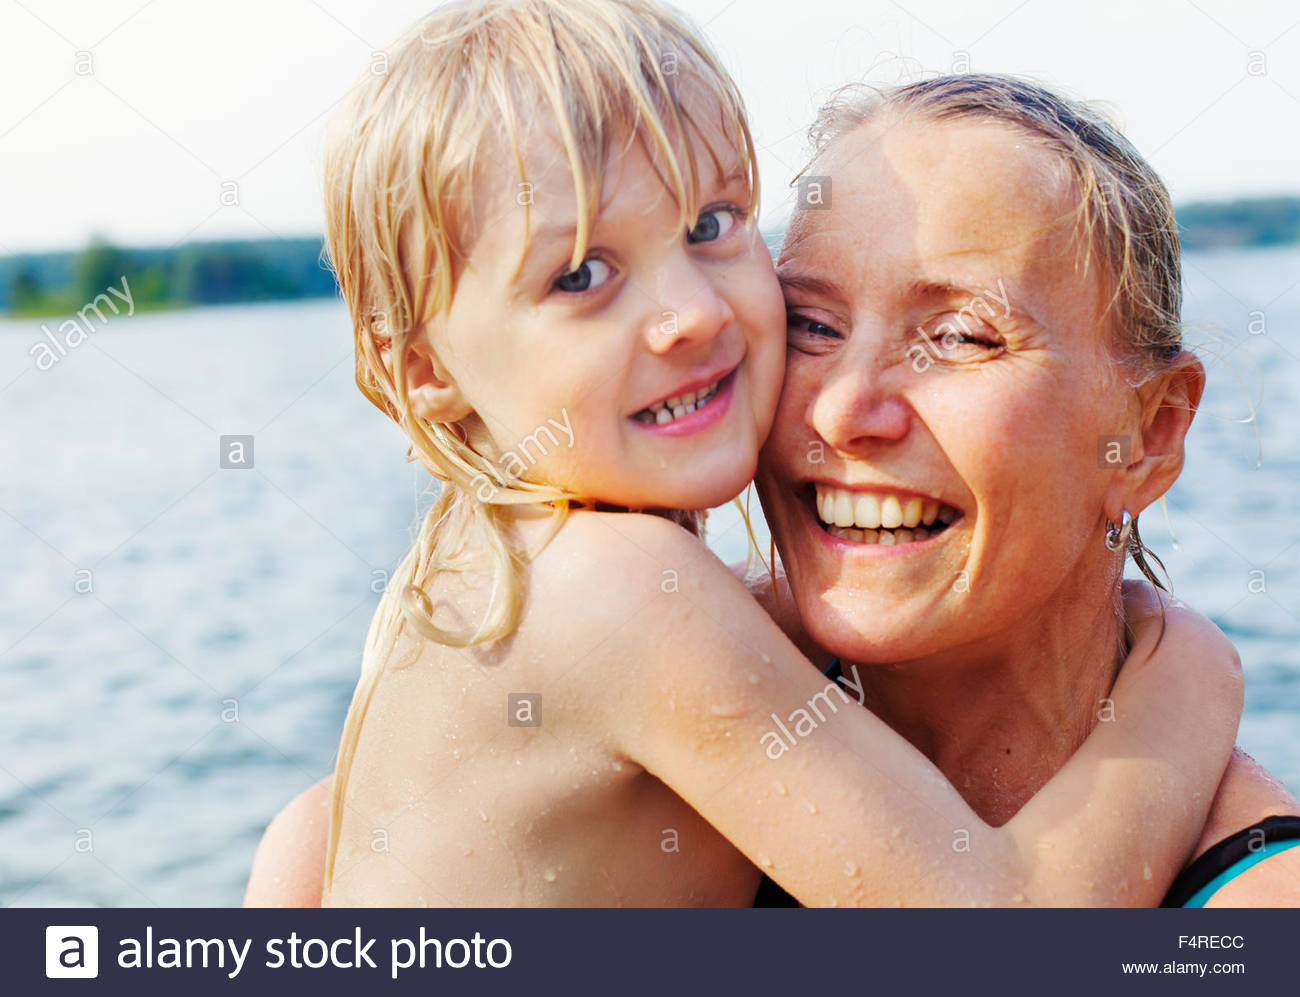 Sweden, Uppland, Varmdo, Portrait of mother with son (4-5) swimming in lake - Stock Image